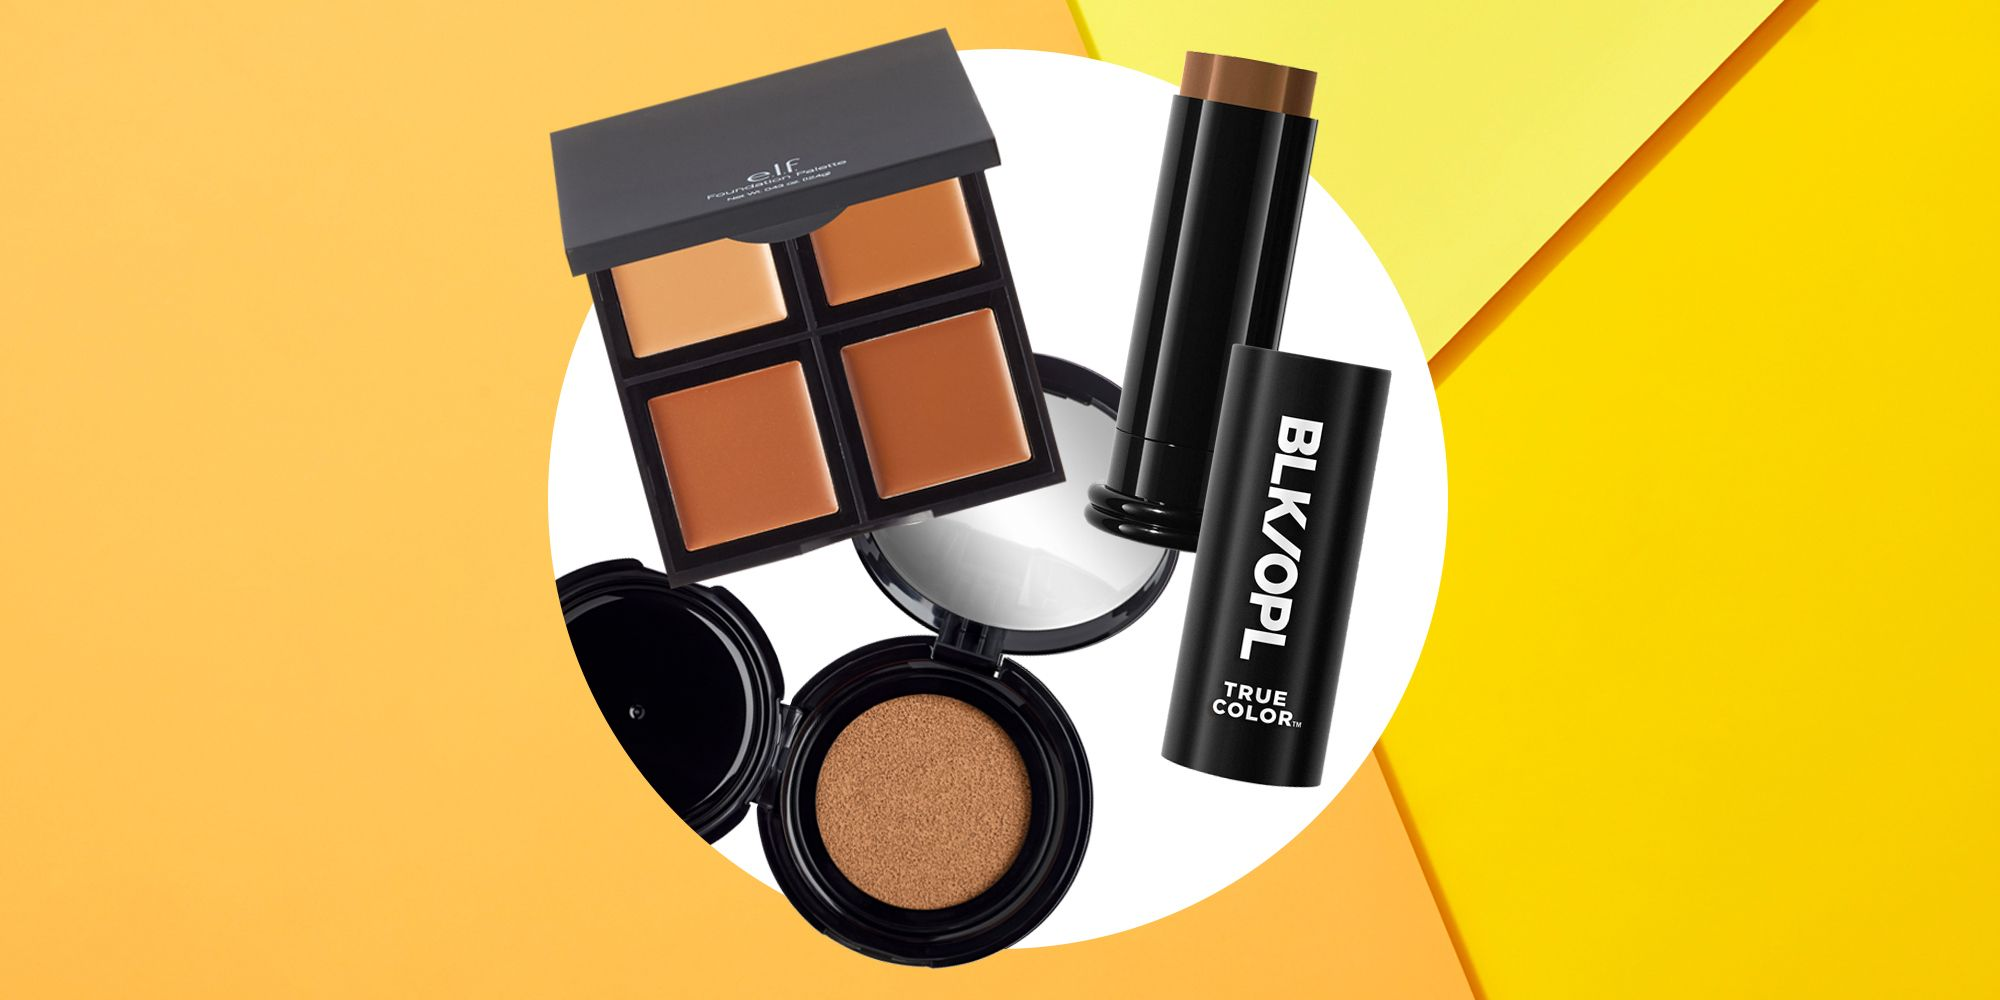 20 Best Drugstore Foundations 2021 For All Skin Tones And Types